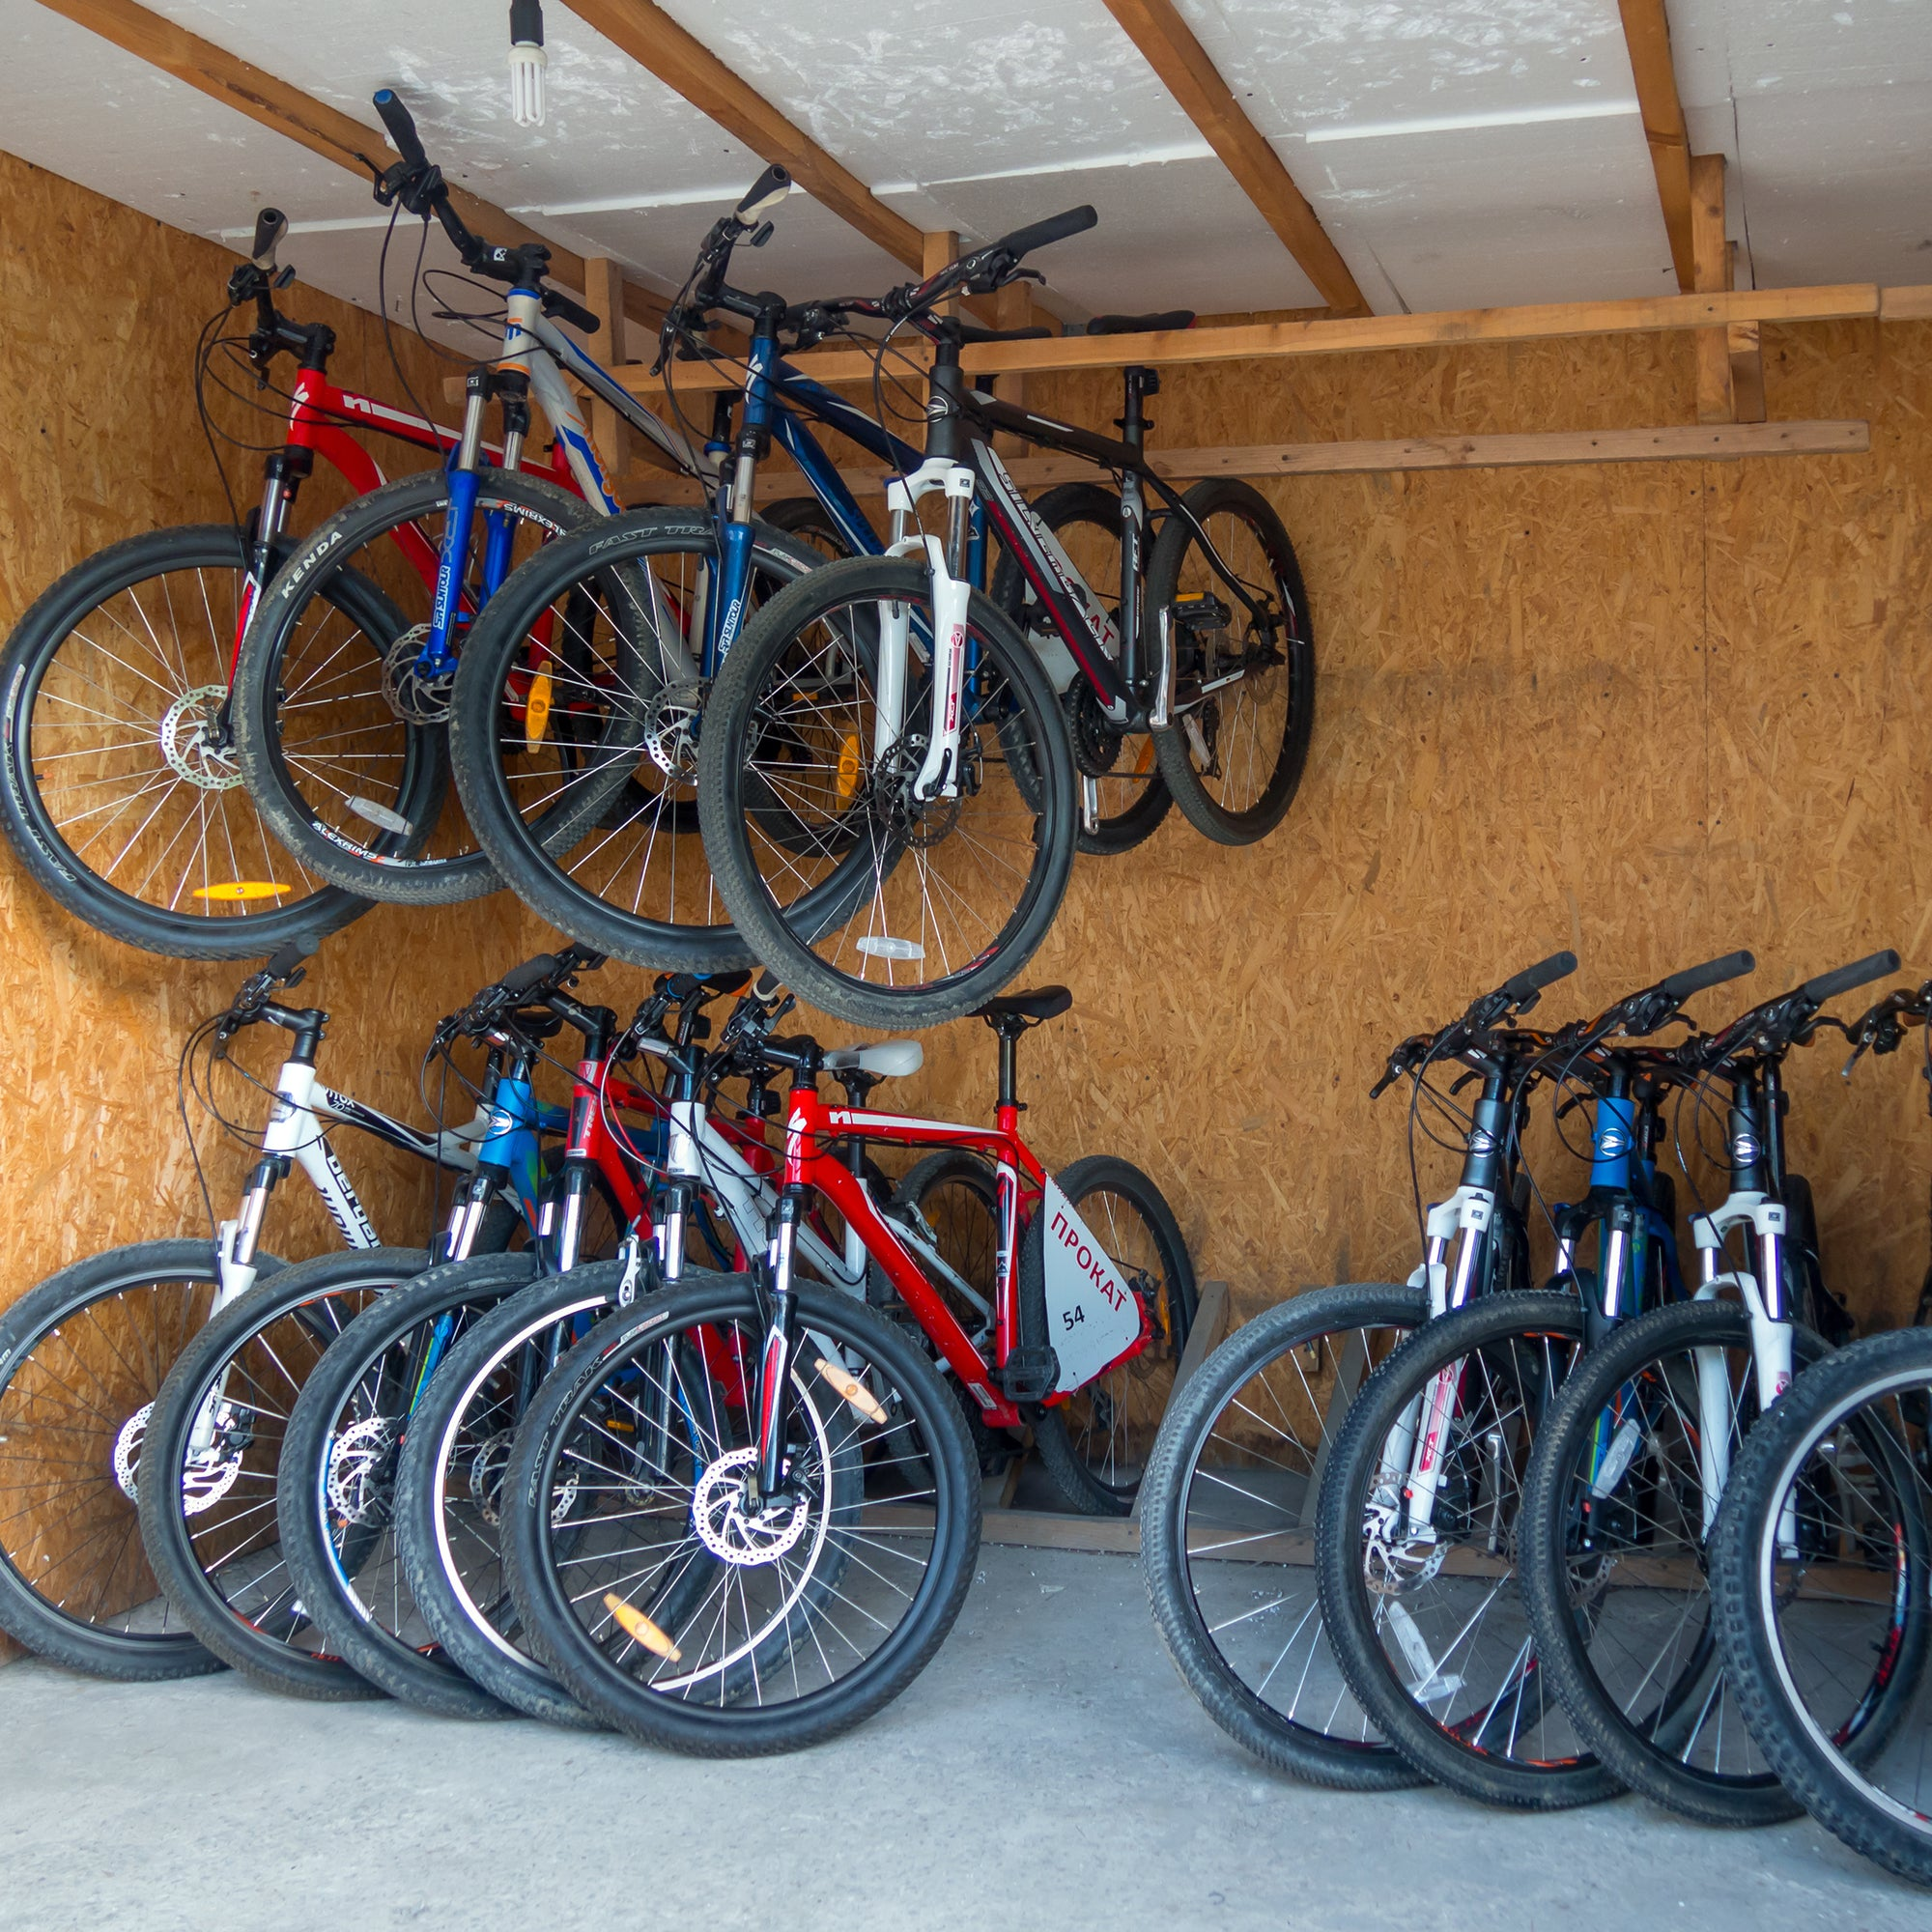 How To Store Your Bike Indoors